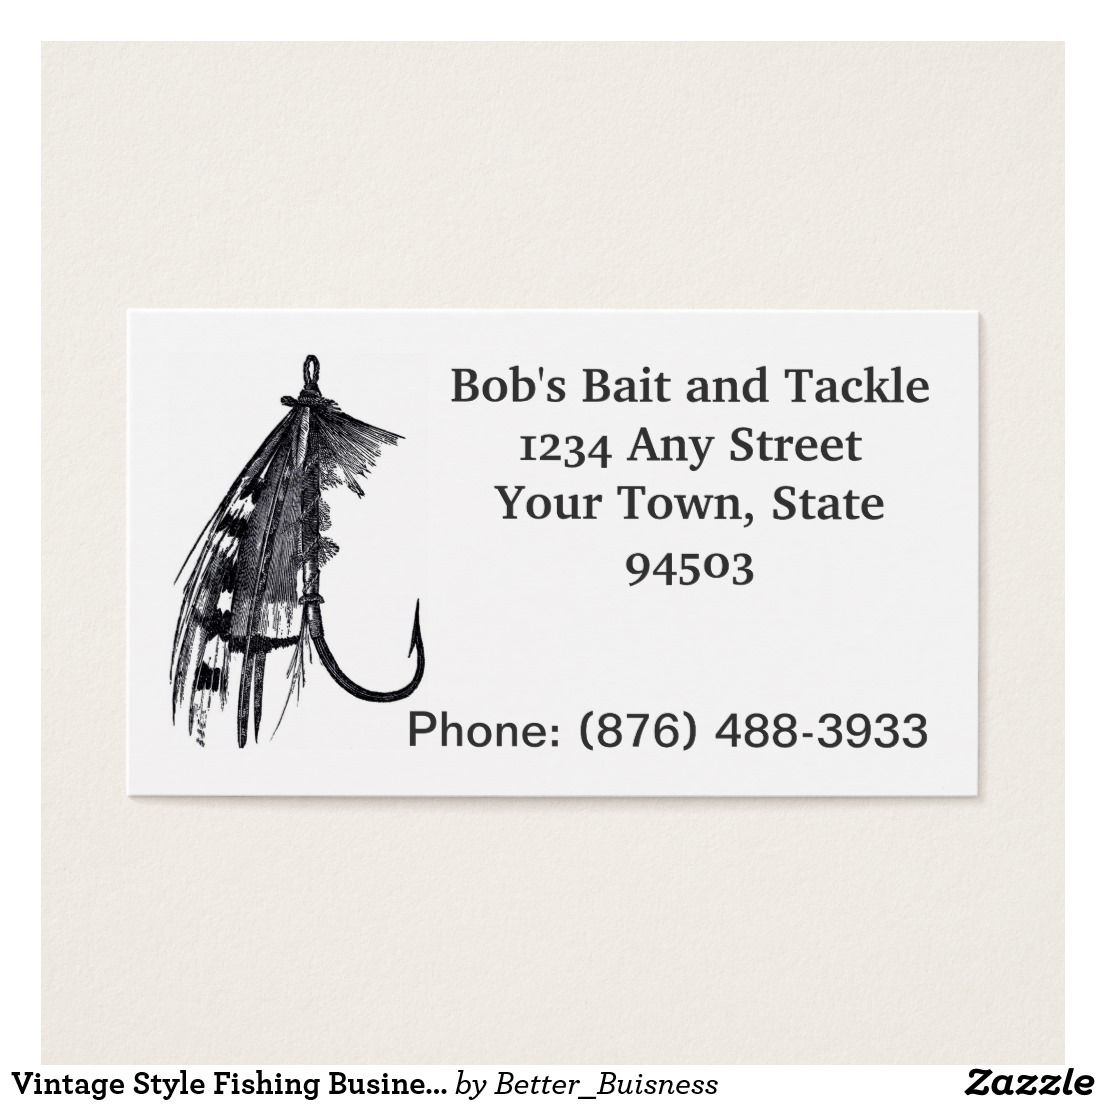 Vintage Style Fishing Business Business Card | Tackle shop